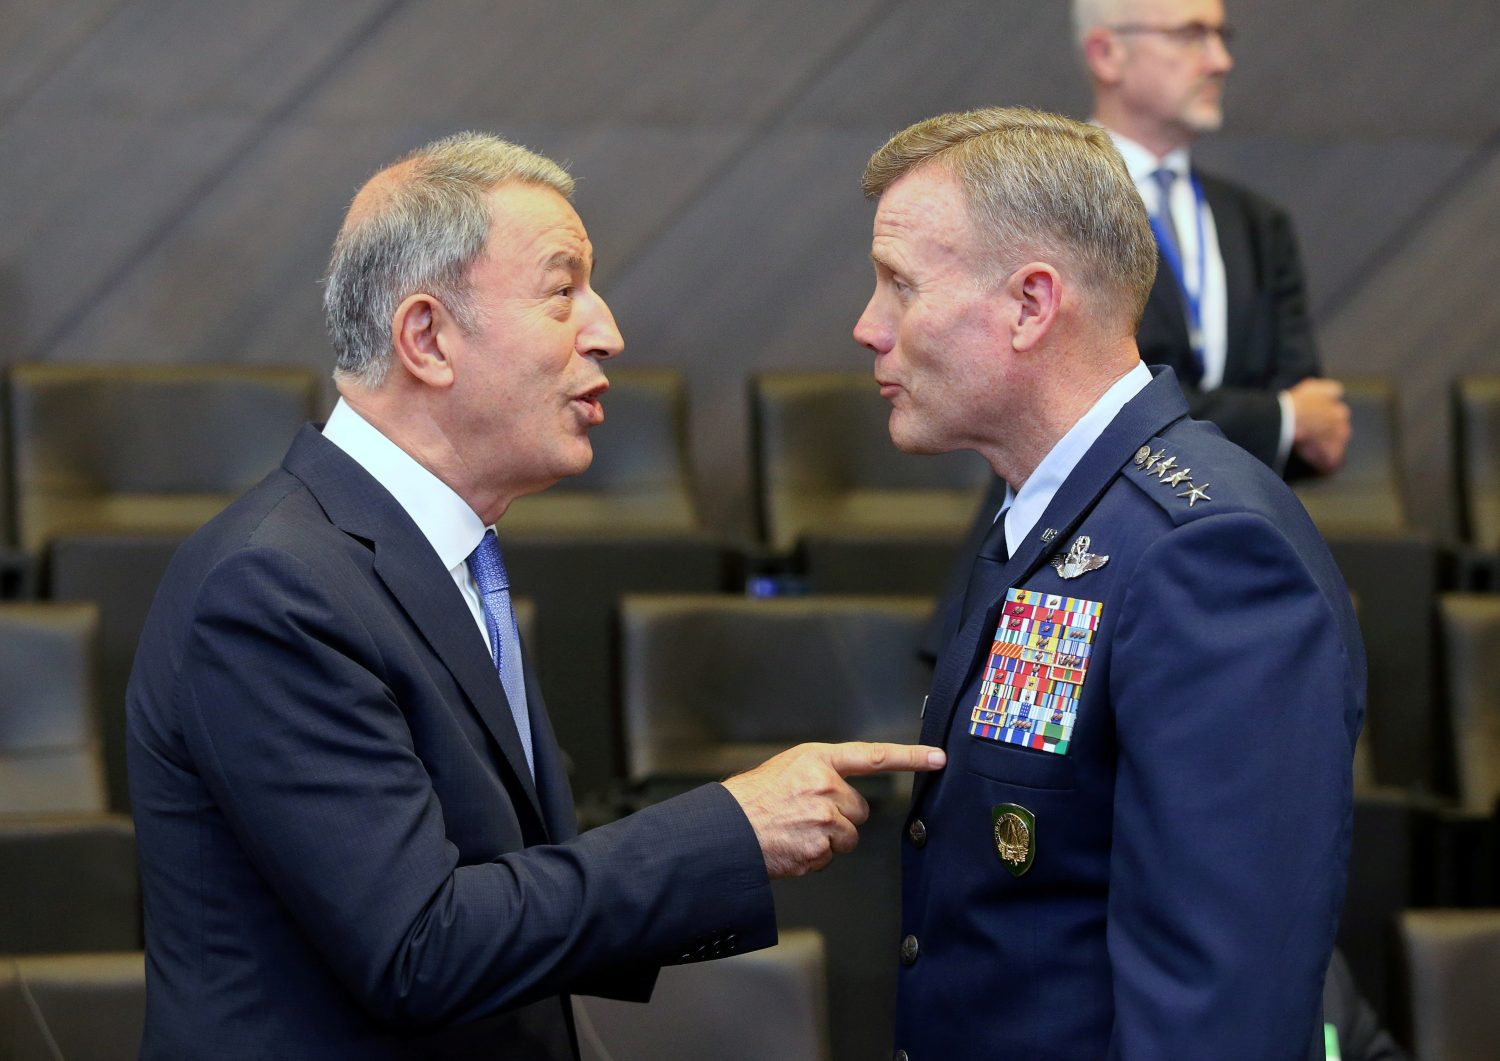 FILE PHOTO: Turkish Defence Minister Hulusi Akar (L) and the Supreme Allied Commander Europe, U.S. Air Force General Tod Wolters, speak at a NATO meeting in Brussels, Belgium, June 26, 2019. REUTERS/Francois Walschaerts/File Photo